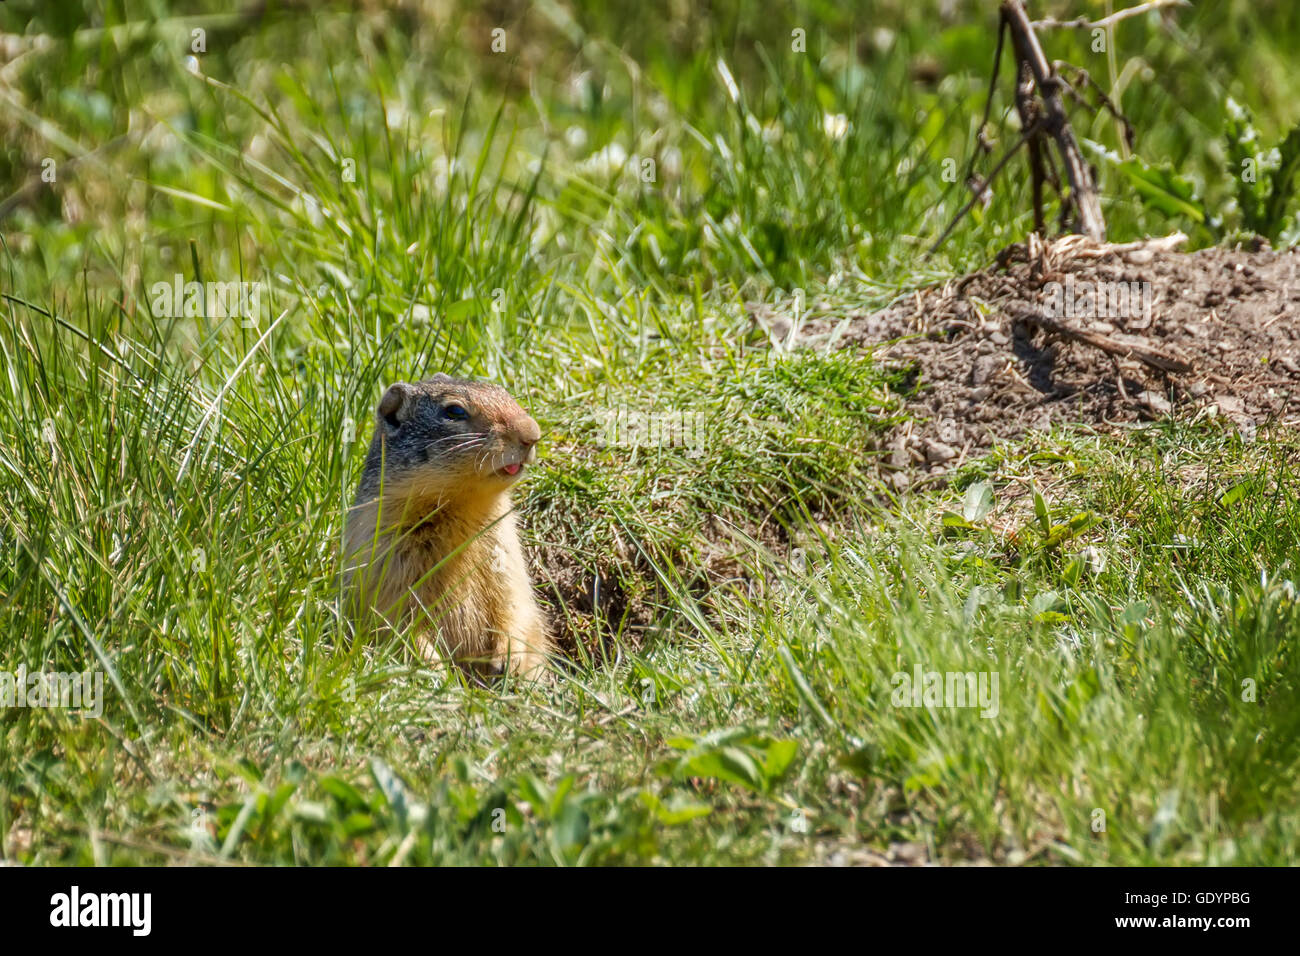 A tiny prairie dog checking me out - Stock Image